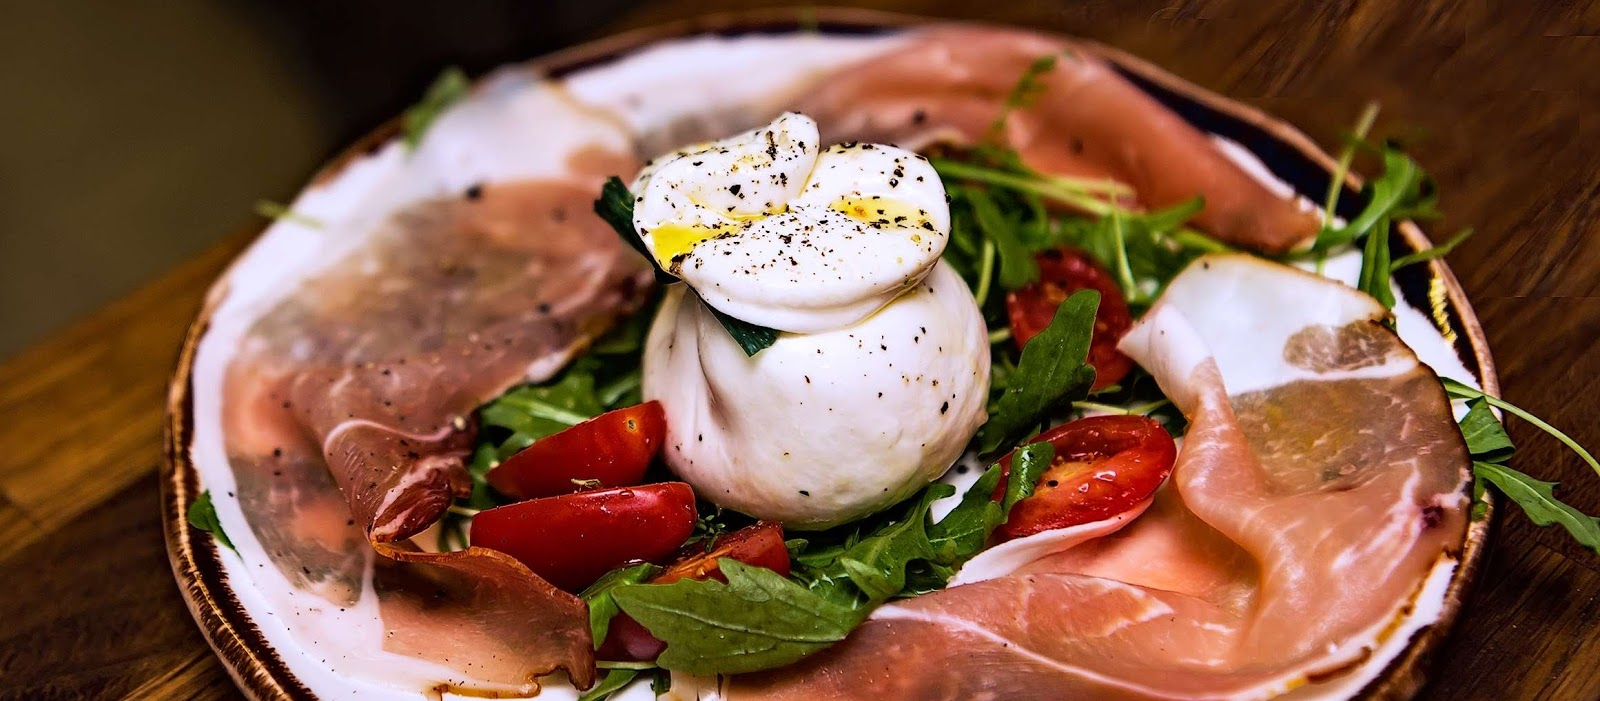 Burrata cheese, speck , mini san marzano tomatoes